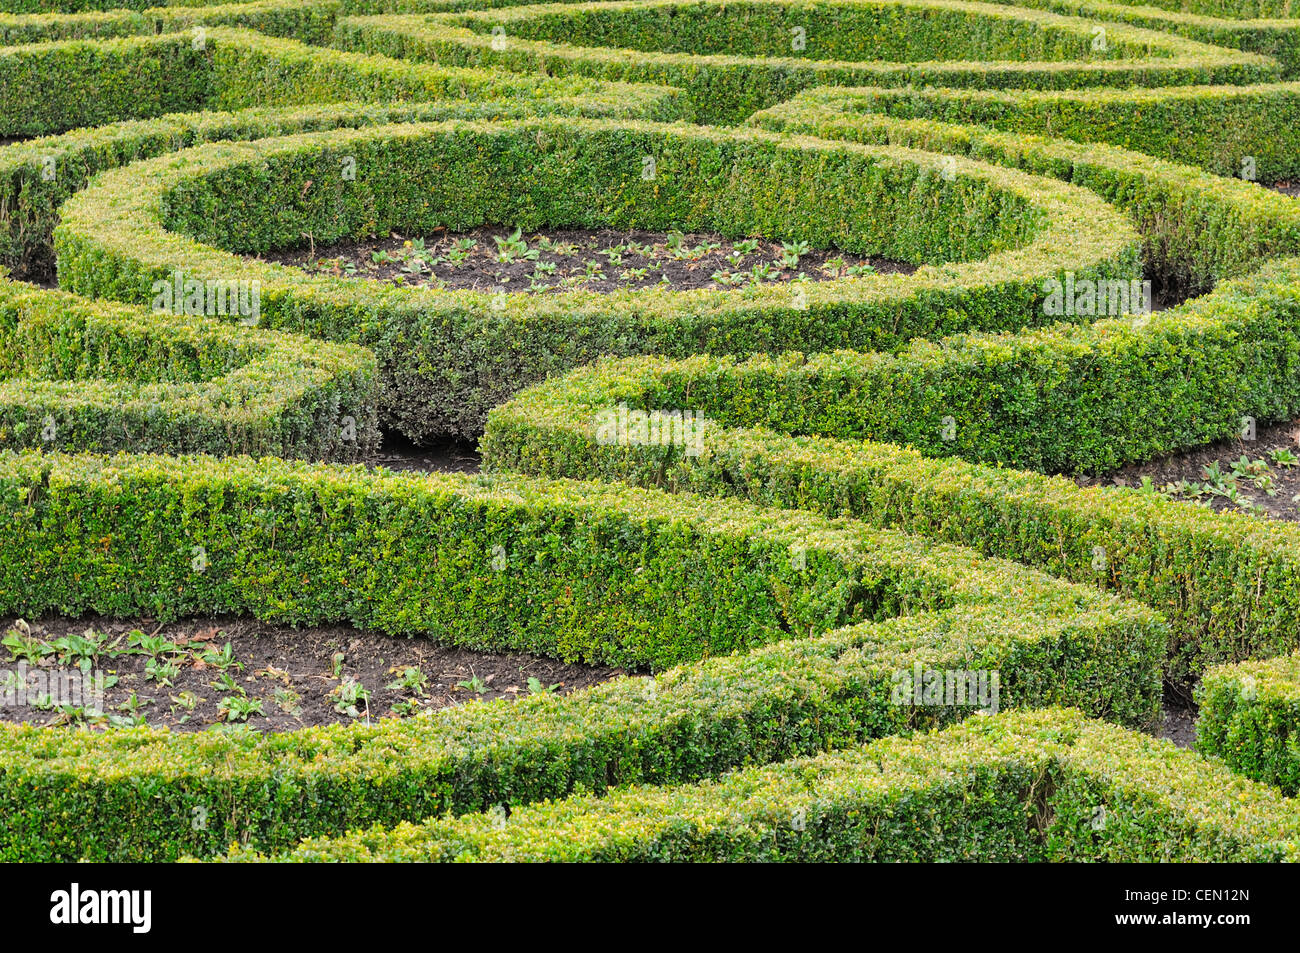 Formal garden box hedging layout at Pollok House in Glasgow, Scotland, UK - Stock Image